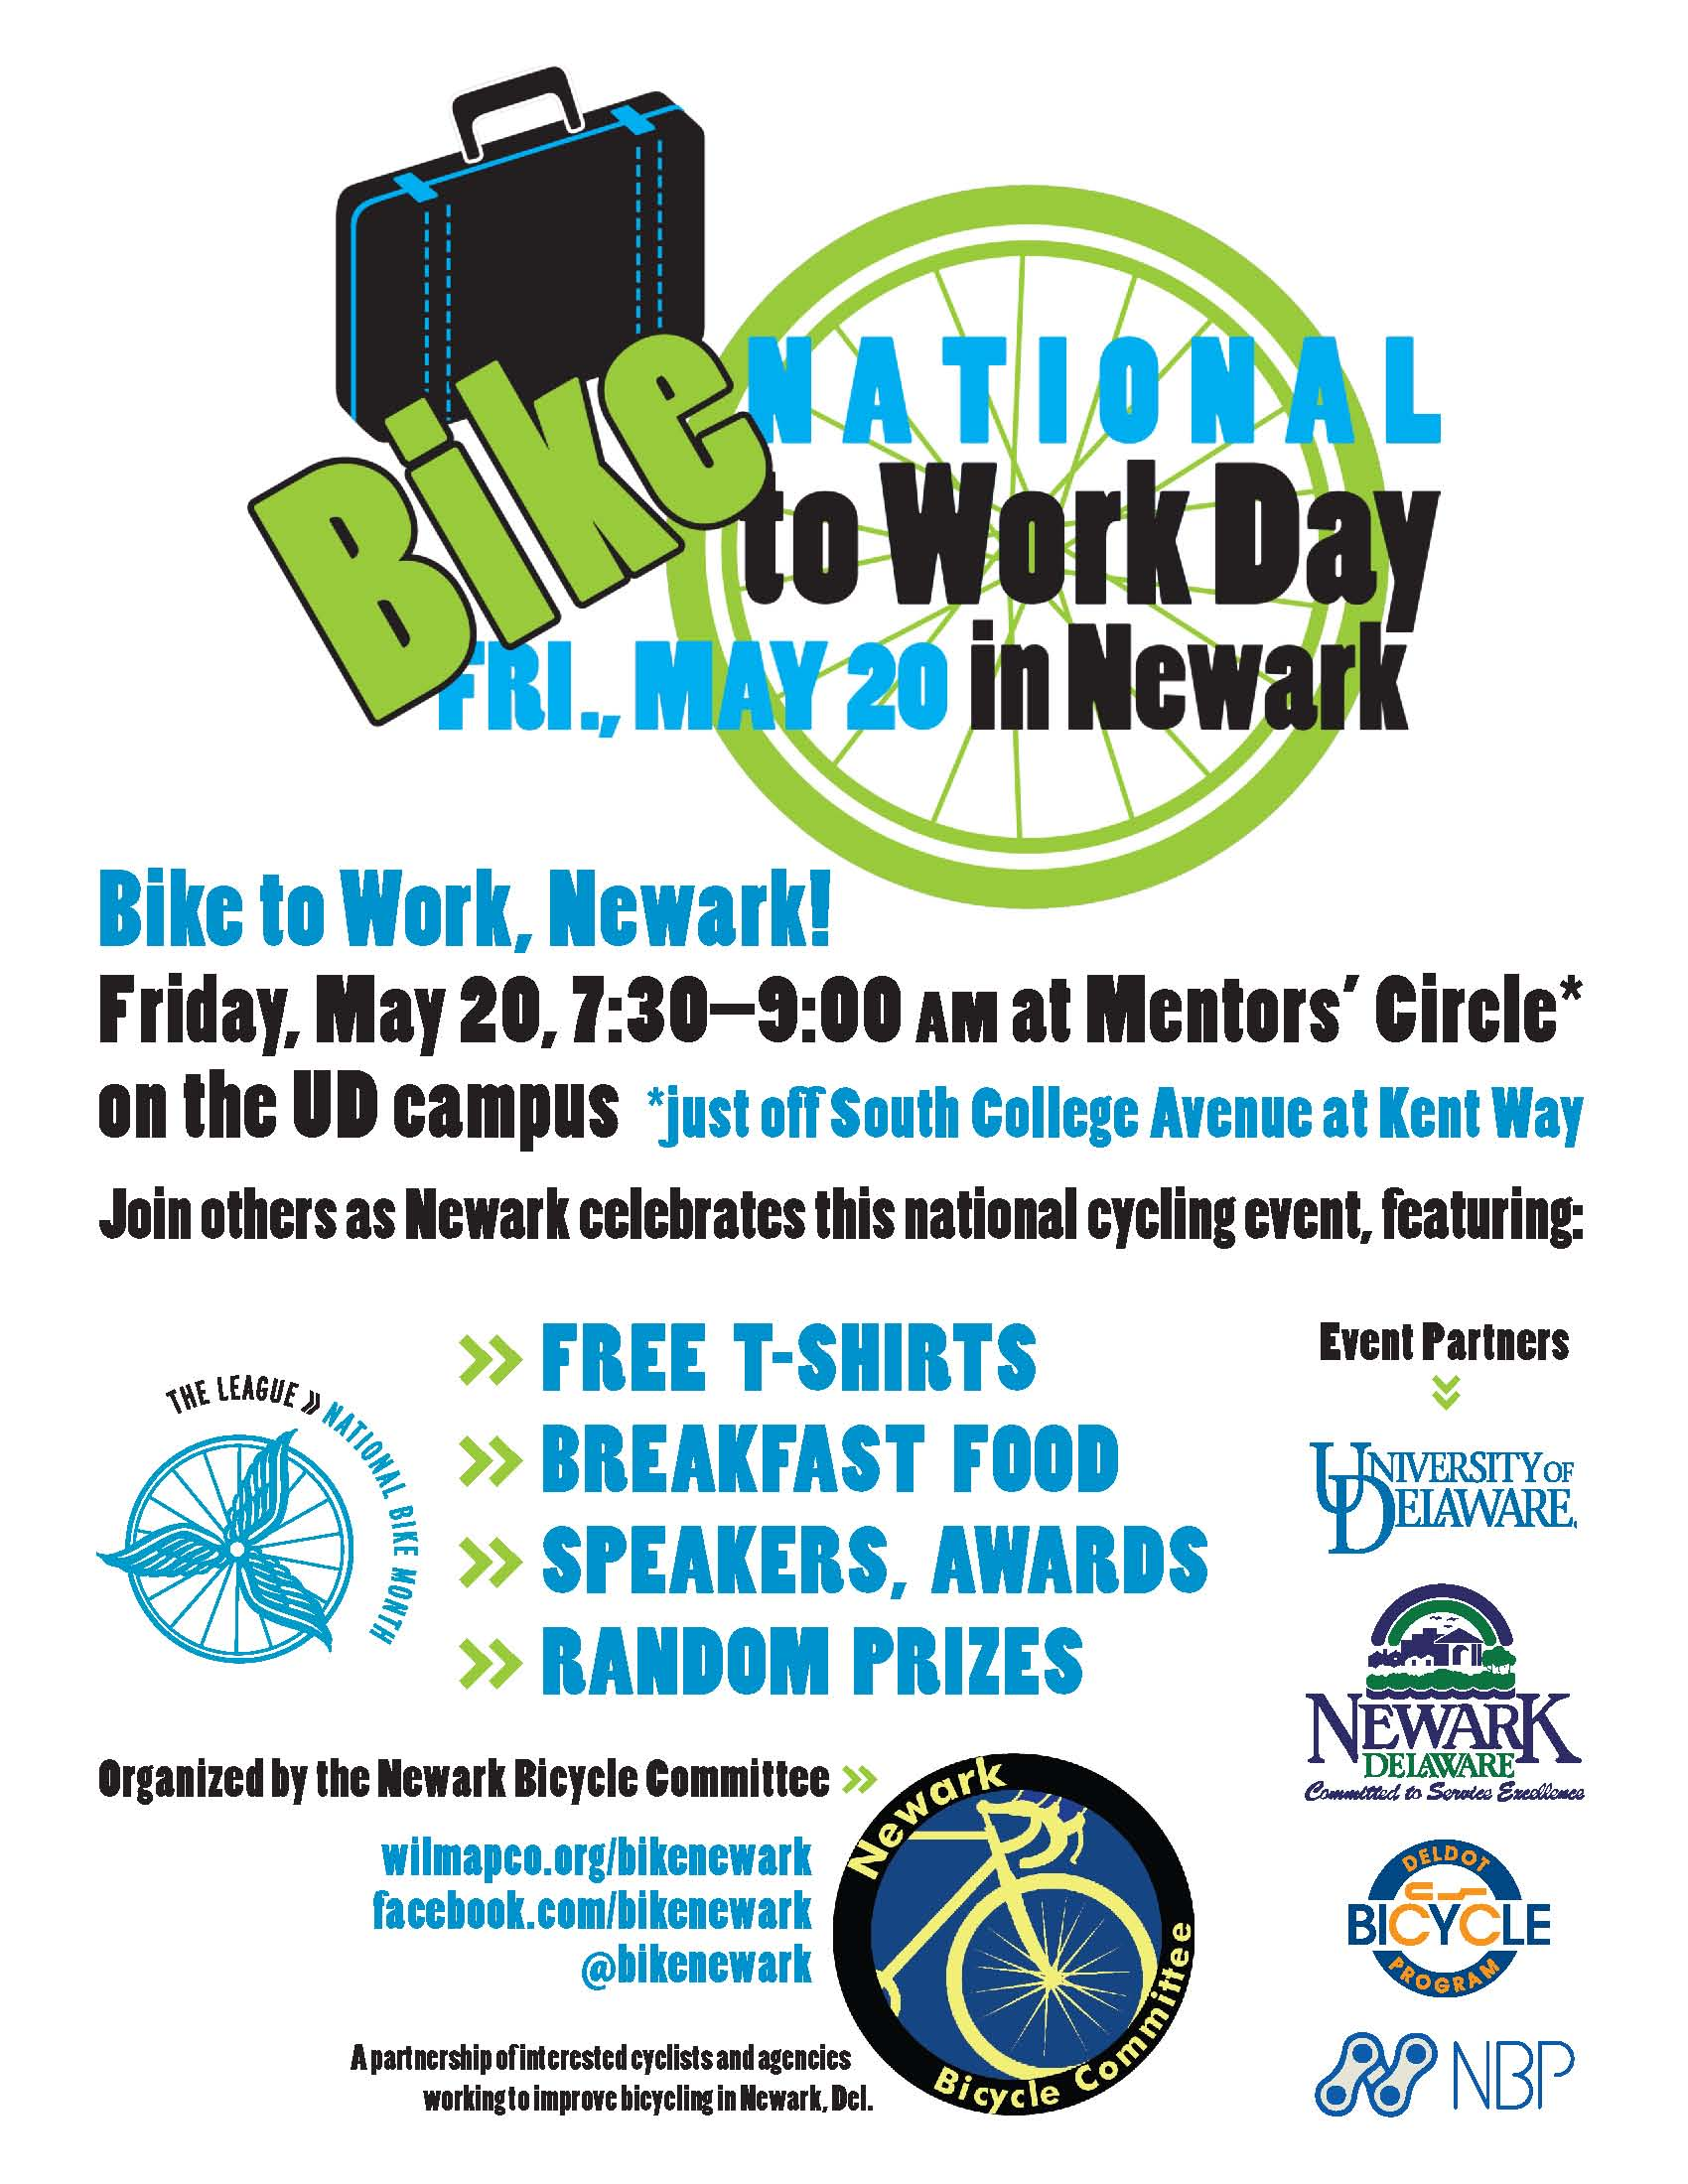 Bike to Work, Newark! Friday, May 20, 7:30–9:00 AM at Mentors' Circle on the UD campus (just off South College Avenue at Kent Way). Join others as Newark celebrates this national cycling event, featuring: » FREE T-SHIRTS » FREE BREAKFAST » SPEAKERS, AWARDS » PRIZES